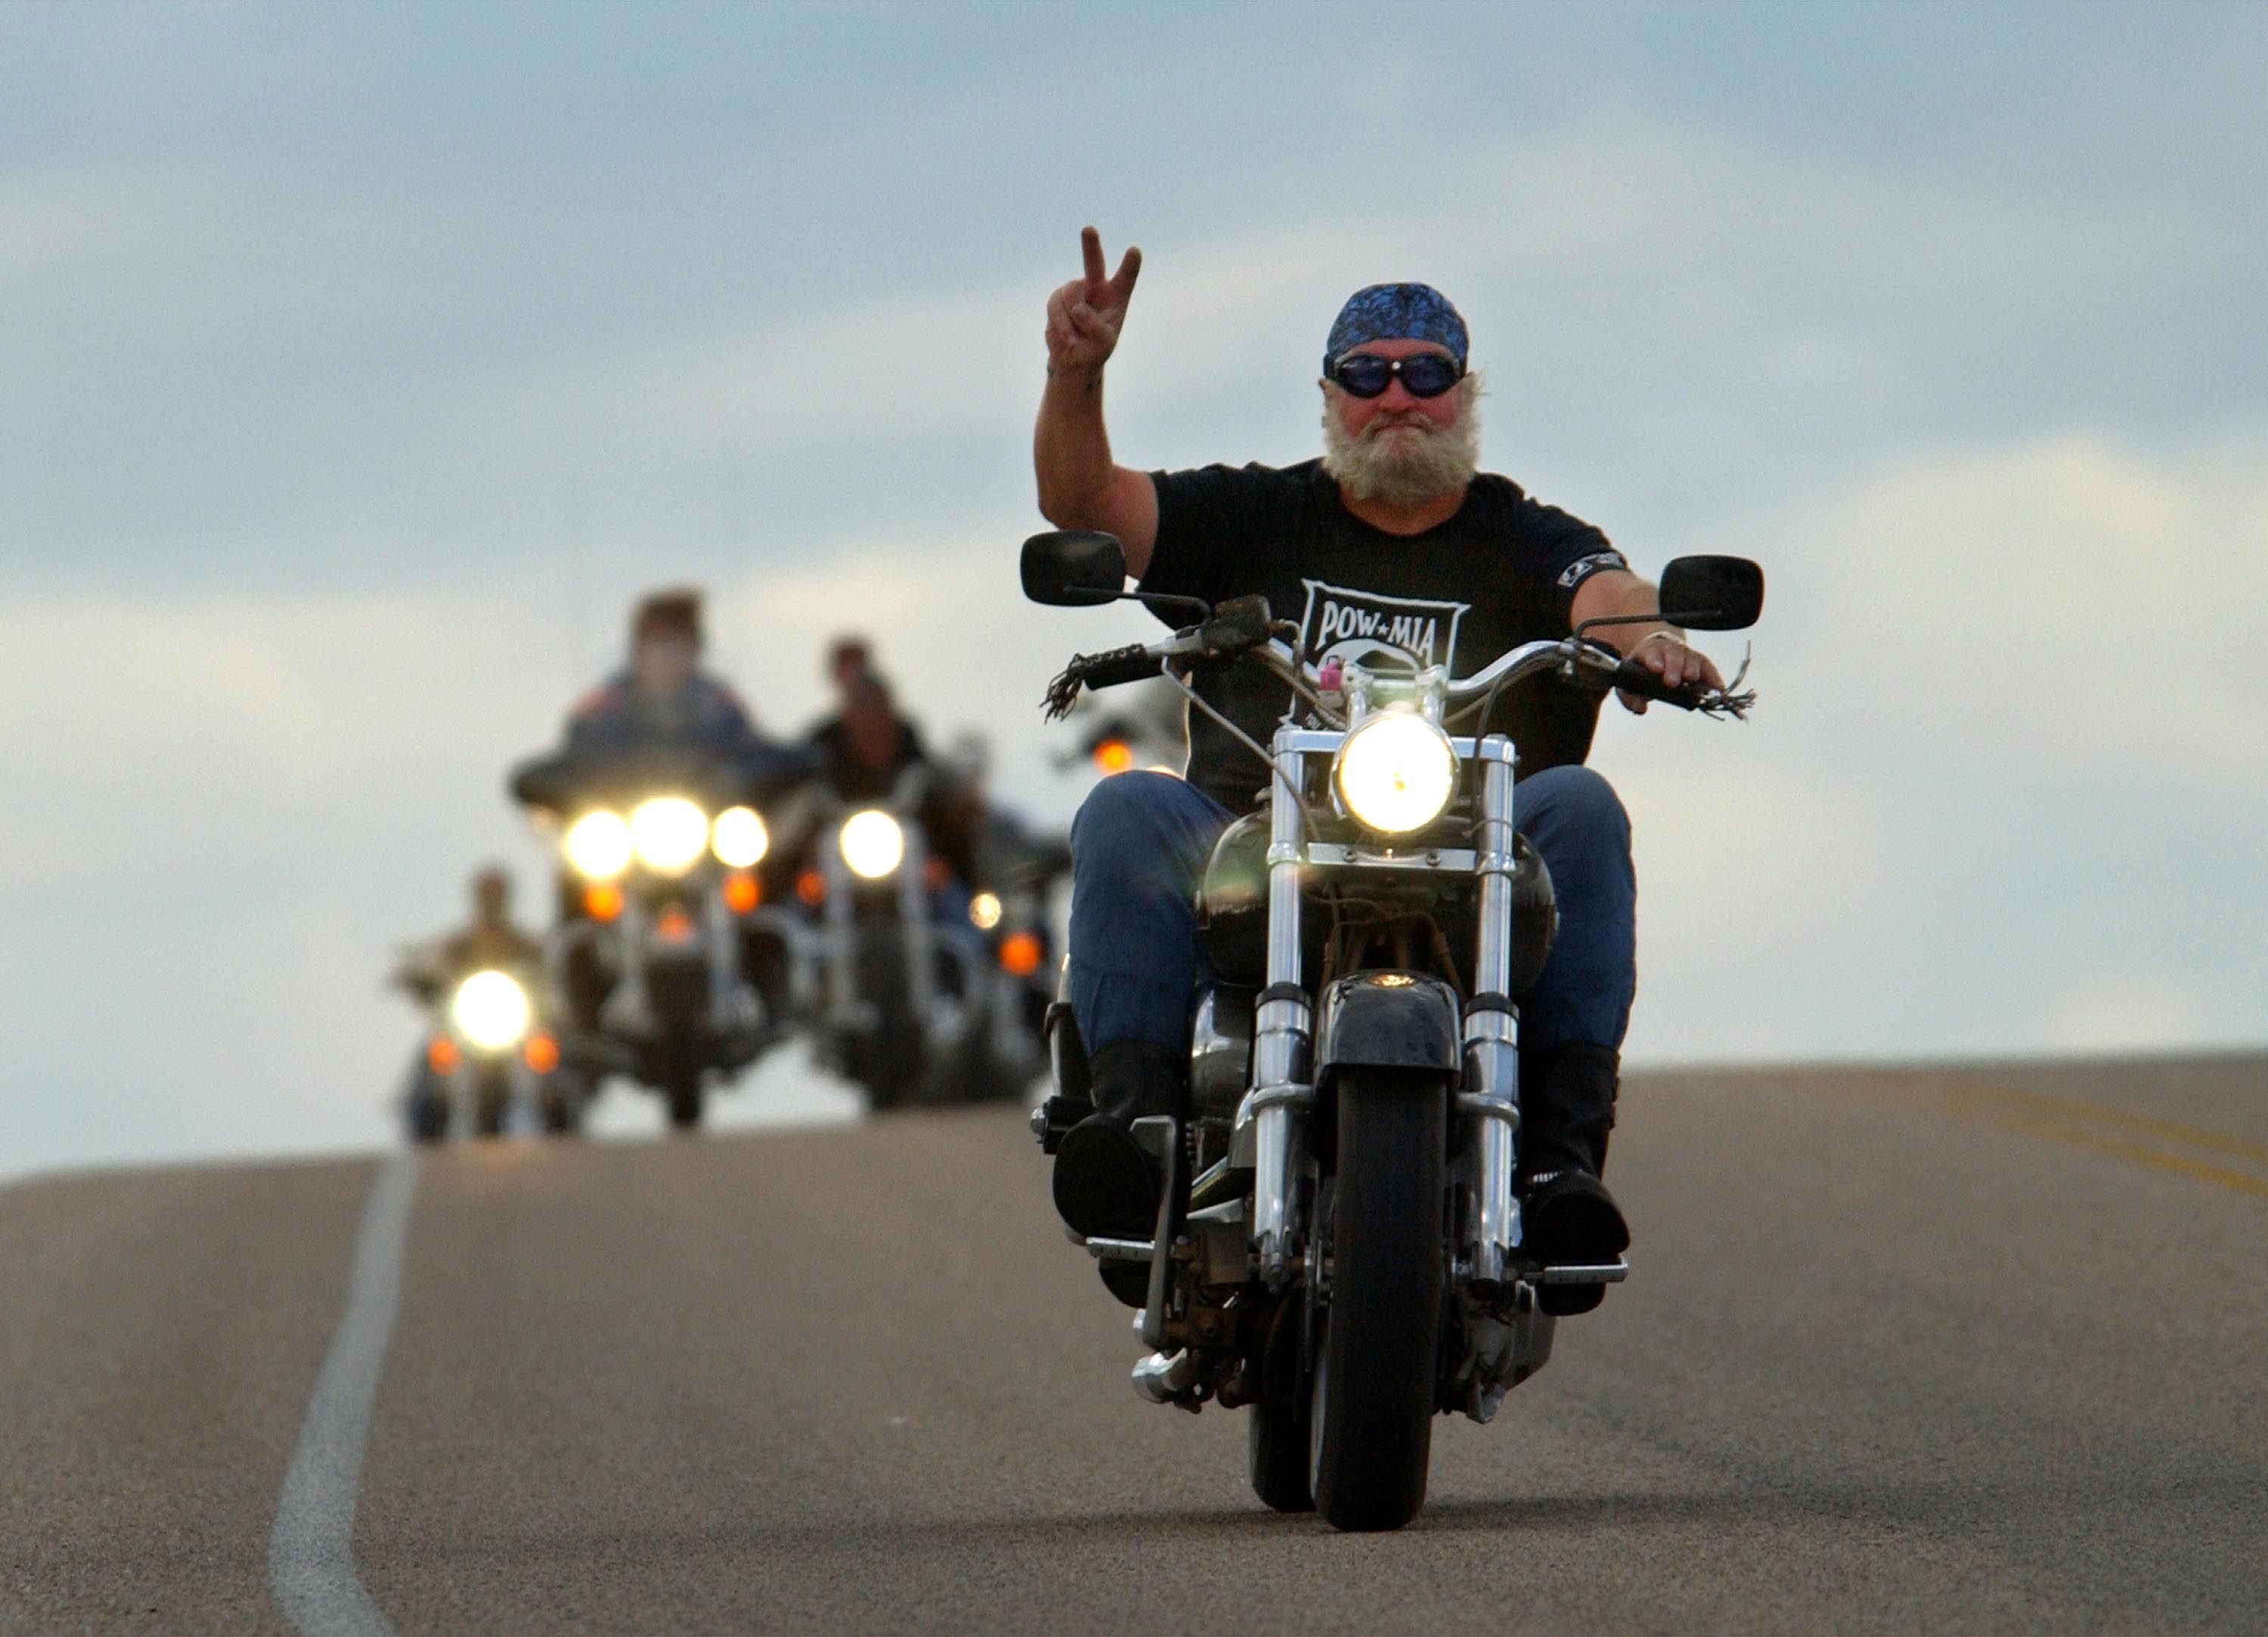 motorcycle riders pictures   How to be seen on motorcycles